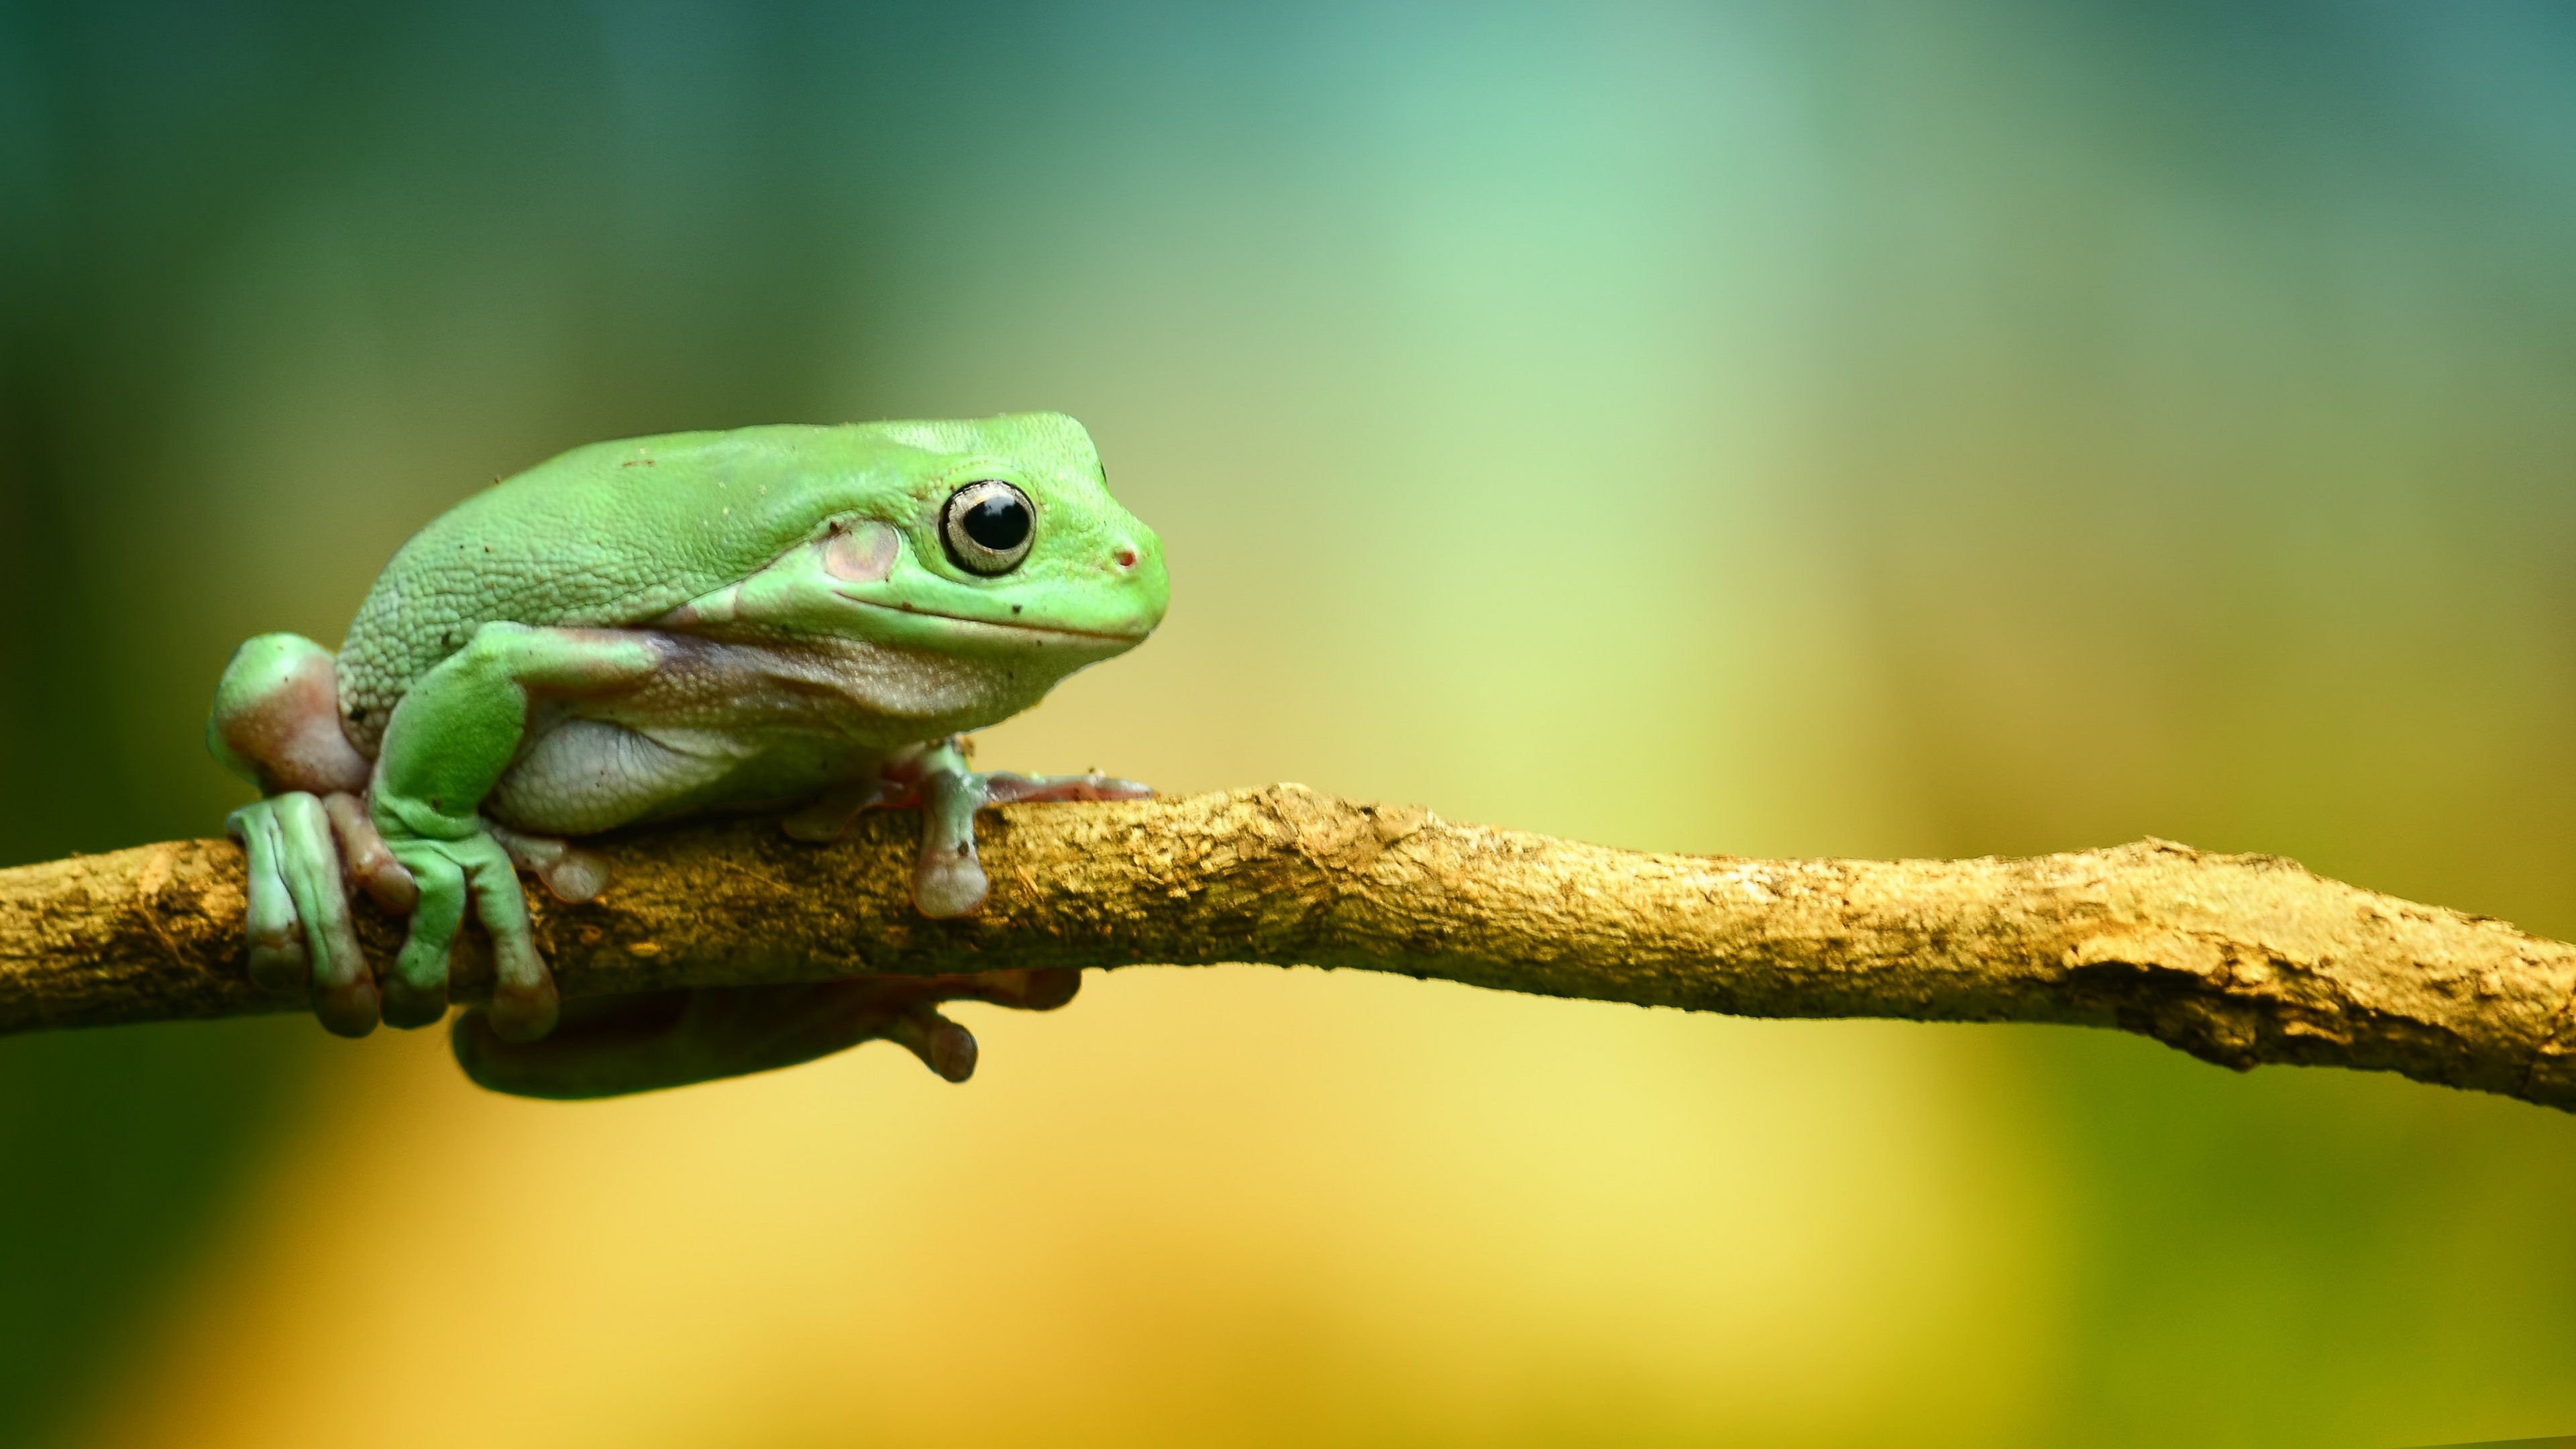 Frog Wallpaper For Computers Green Frog Background 2915281 Hd Wallpaper Backgrounds Download